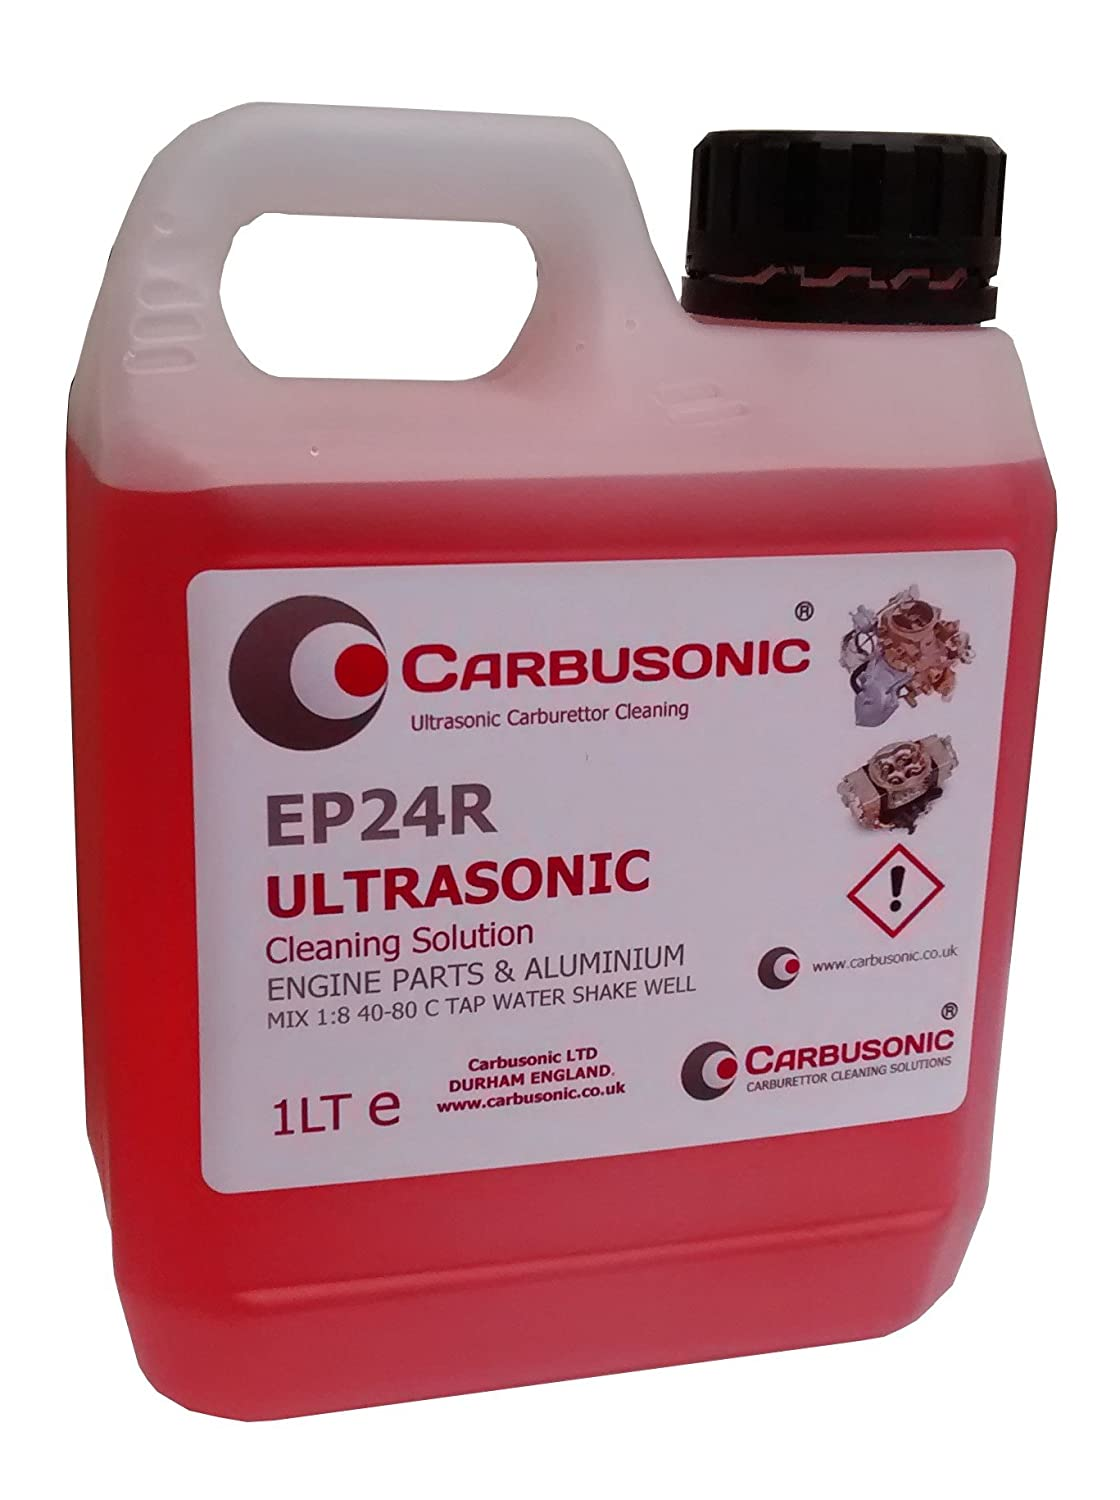 Ultrasonic carburettor automotive cleaning solution 1lt removes dirt and grease from engine parts, tools and motorbike parts 1 litre Carbusonic